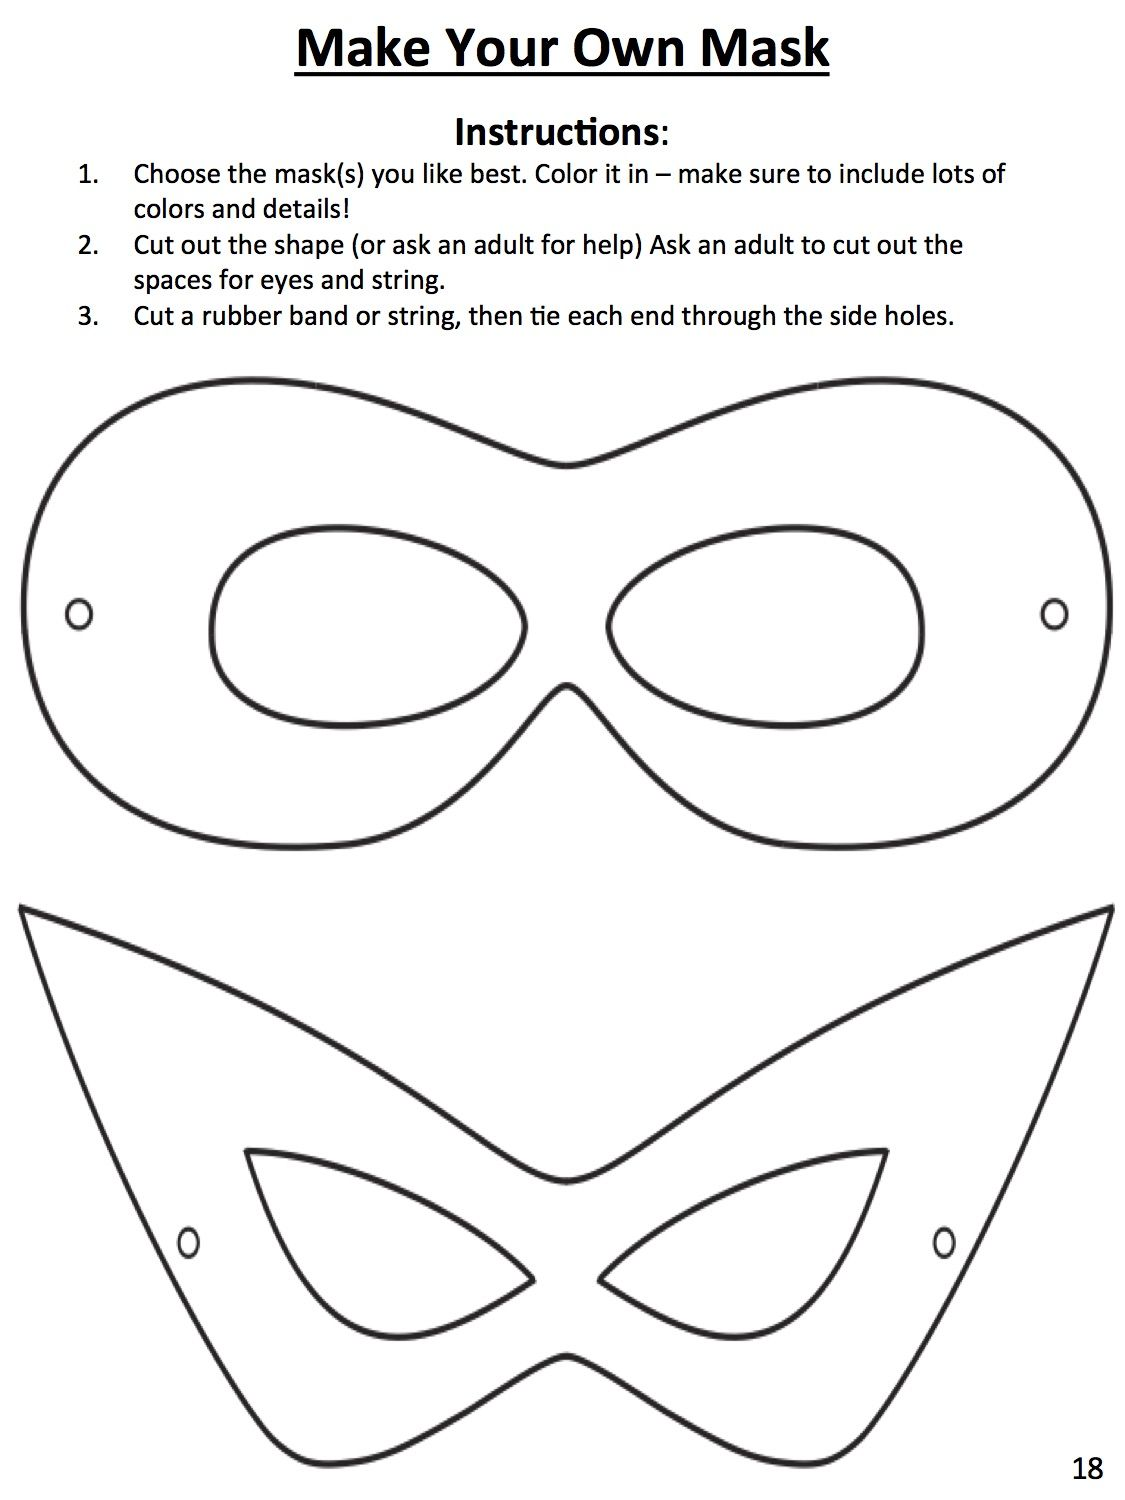 Download This Template To Design Your Own Superhero Mask Myon Has